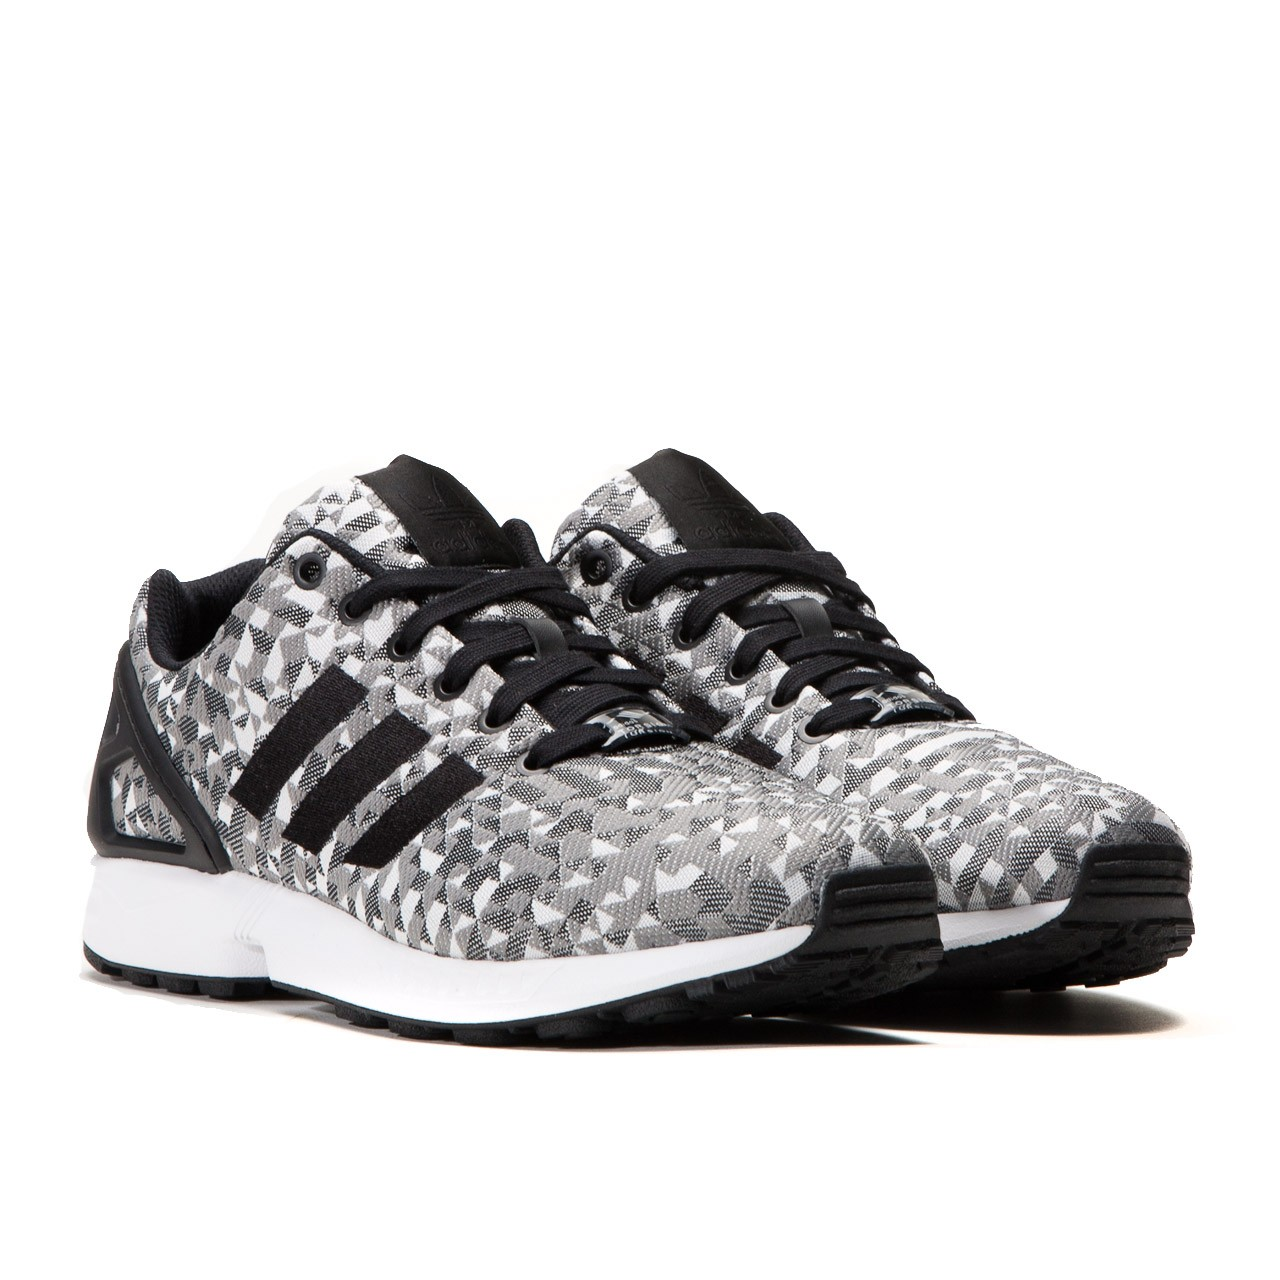 adidas Originals ZX Flux Weave Grey Prism retails for €89.90 (approximately  RM350) via Allike Store.